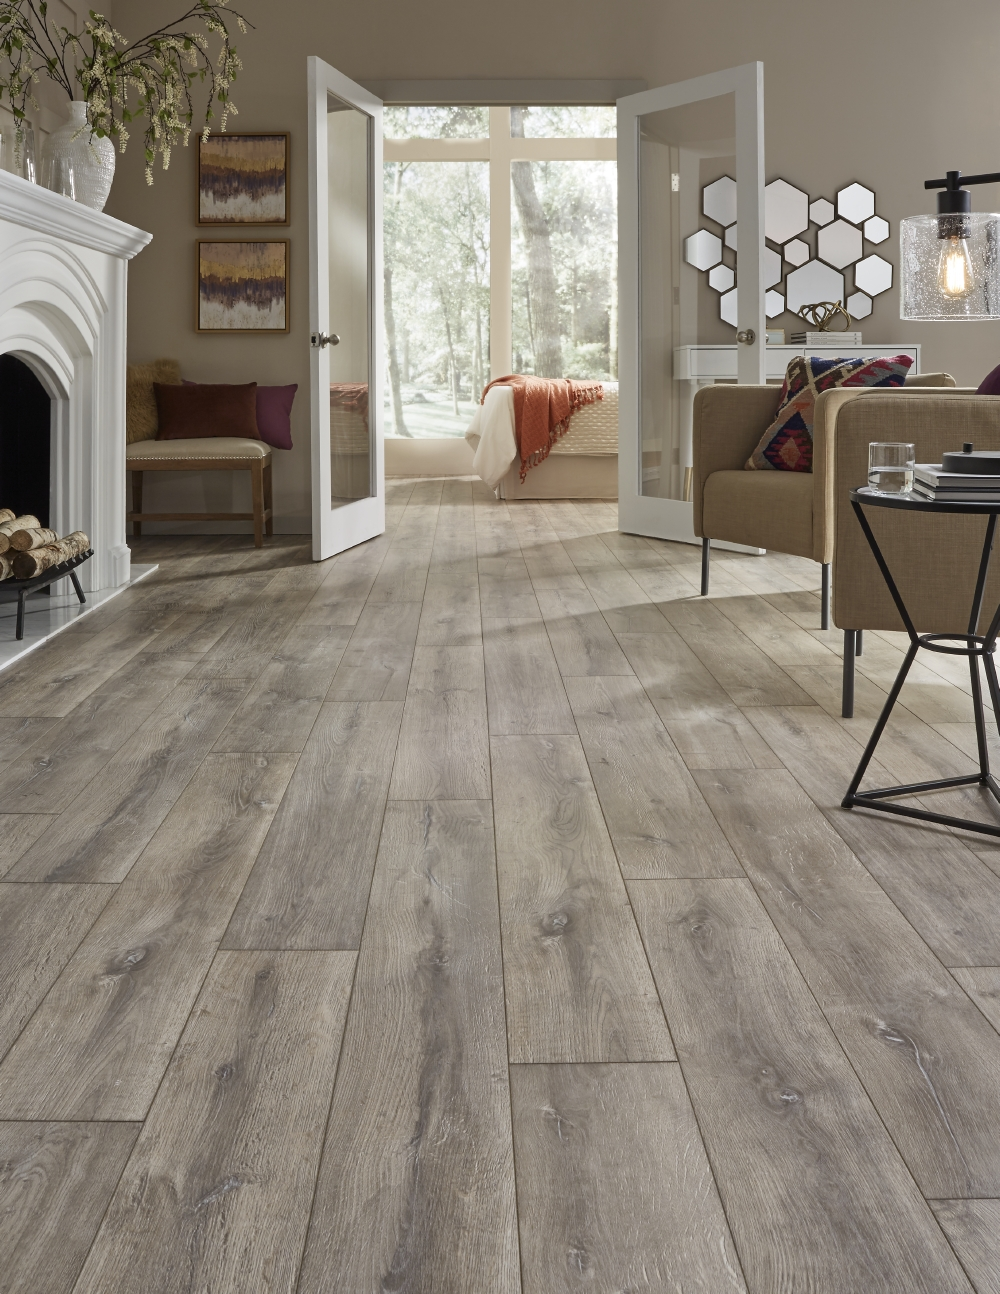 Laminate floor blacksmith oak home flooring laminate - Laminate or wood flooring ...